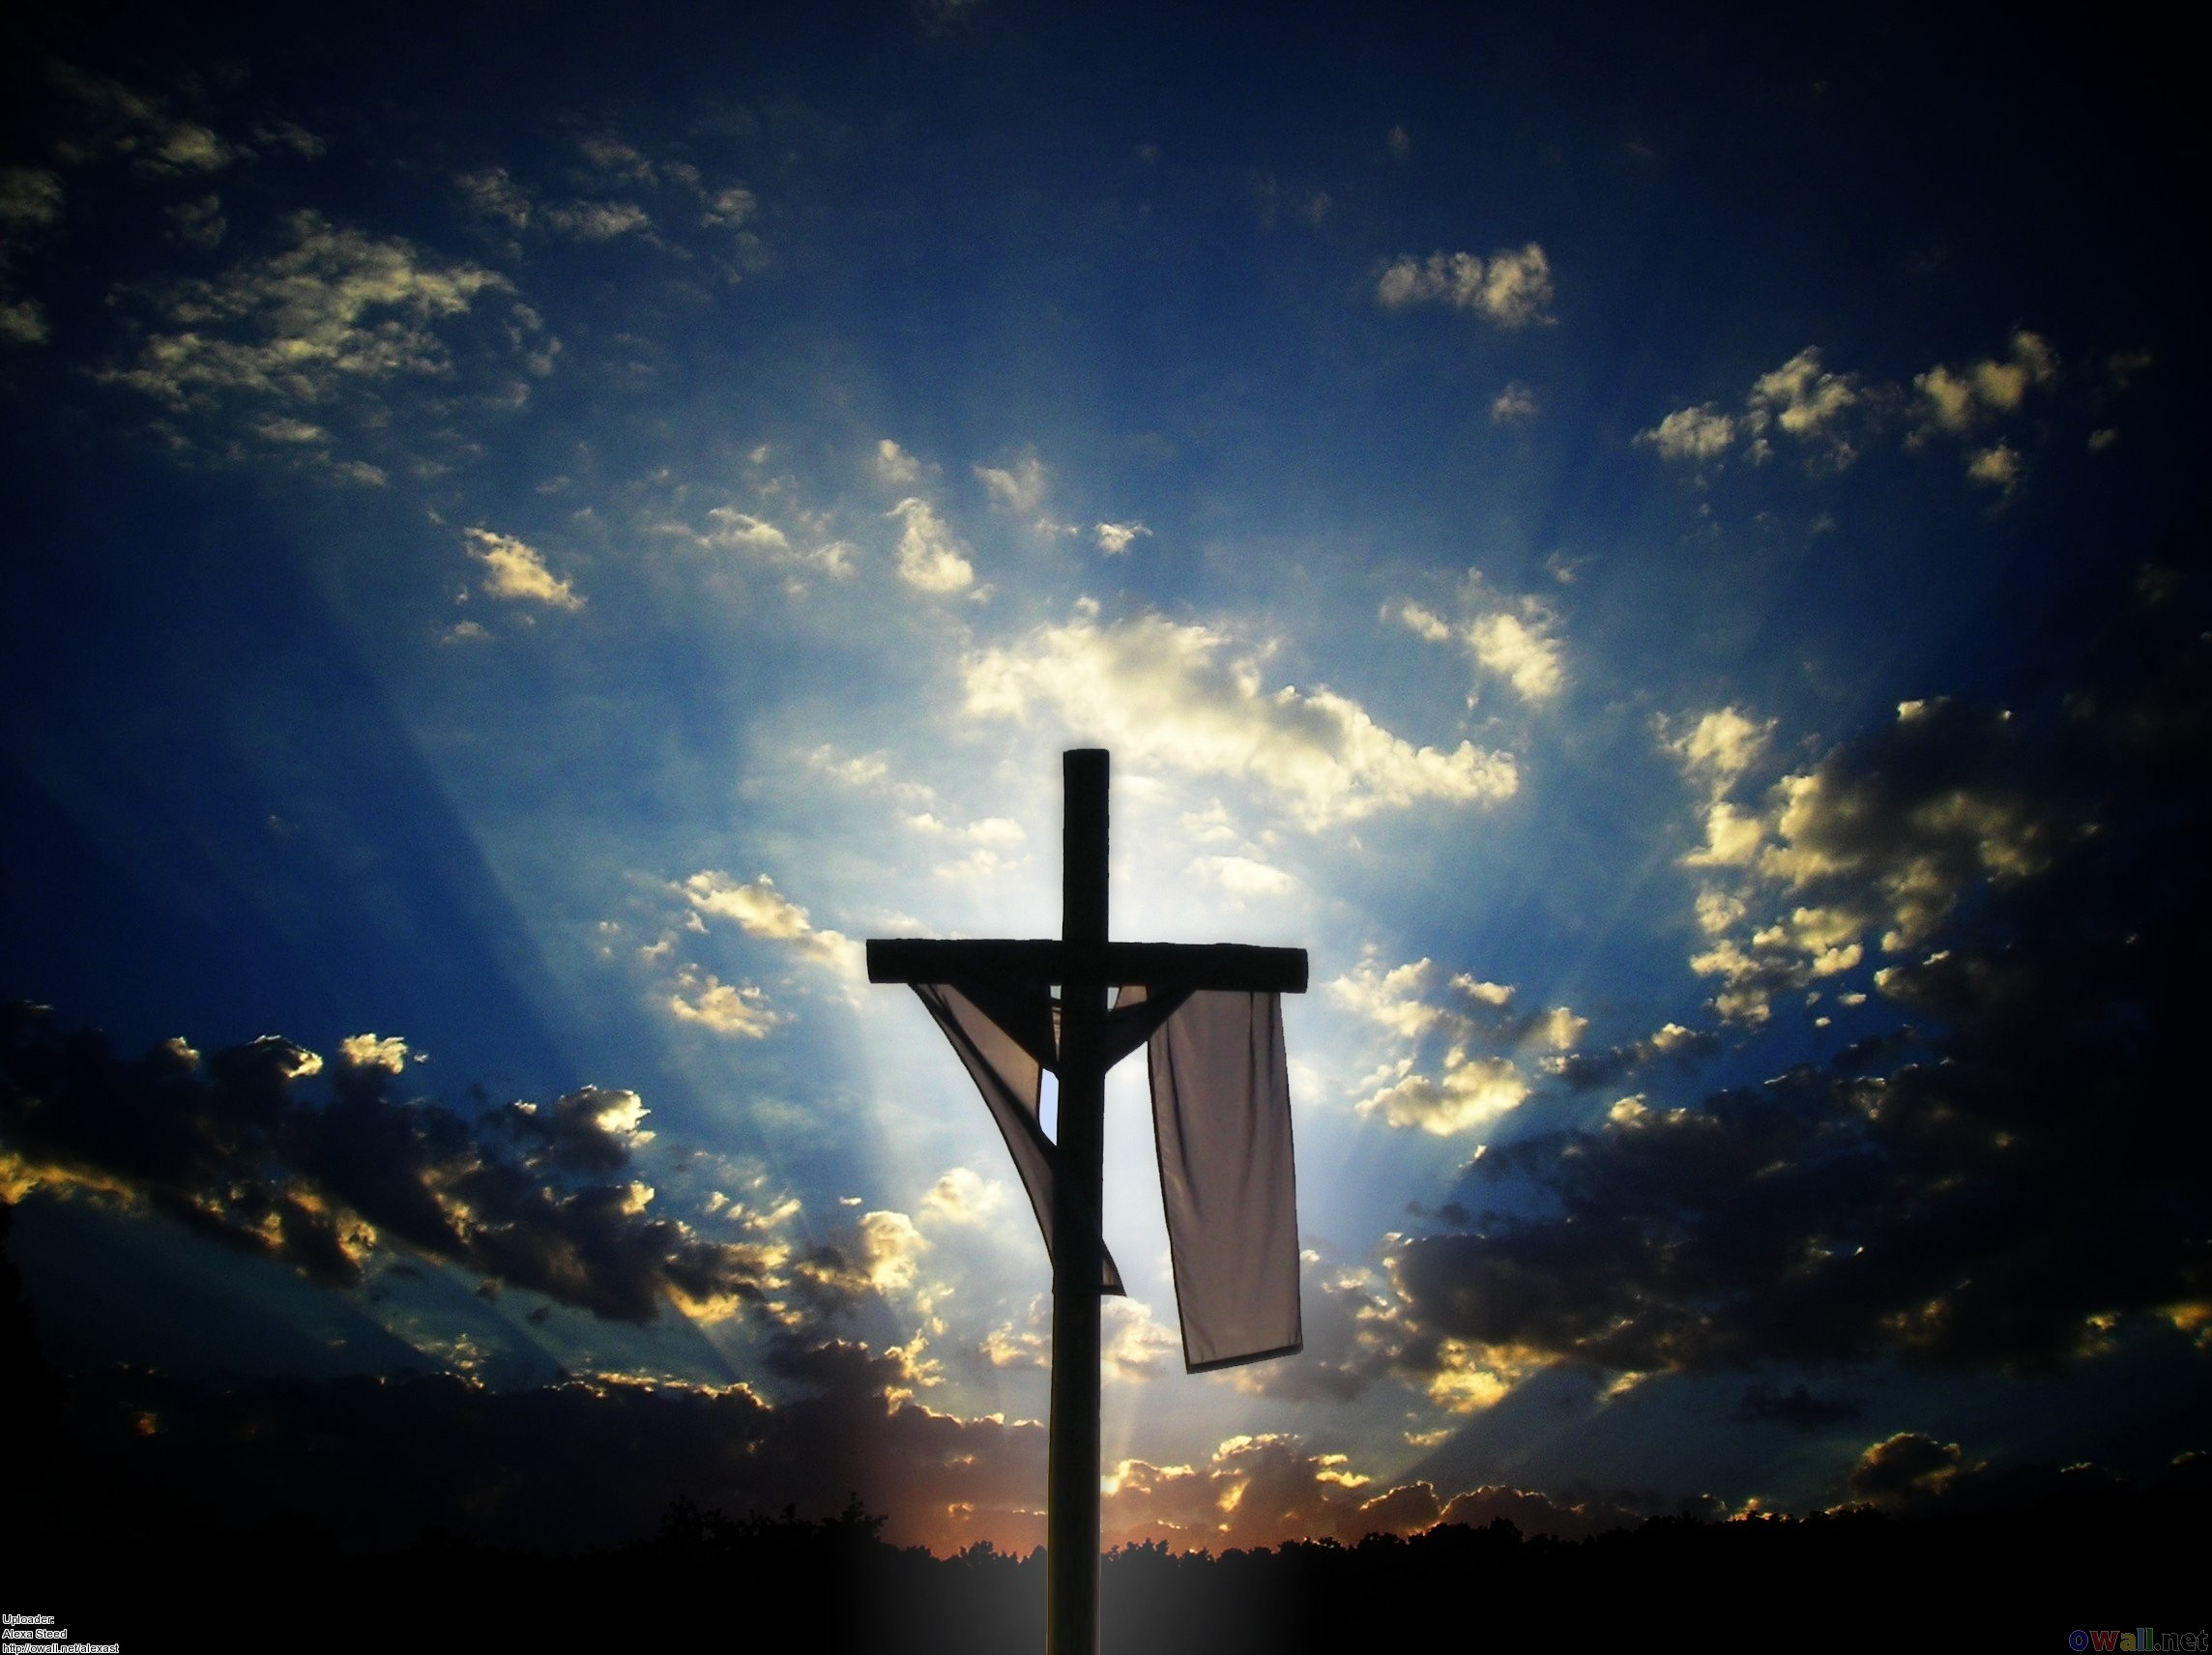 The Questions of Lent: To Give Up or Not to Give Up?